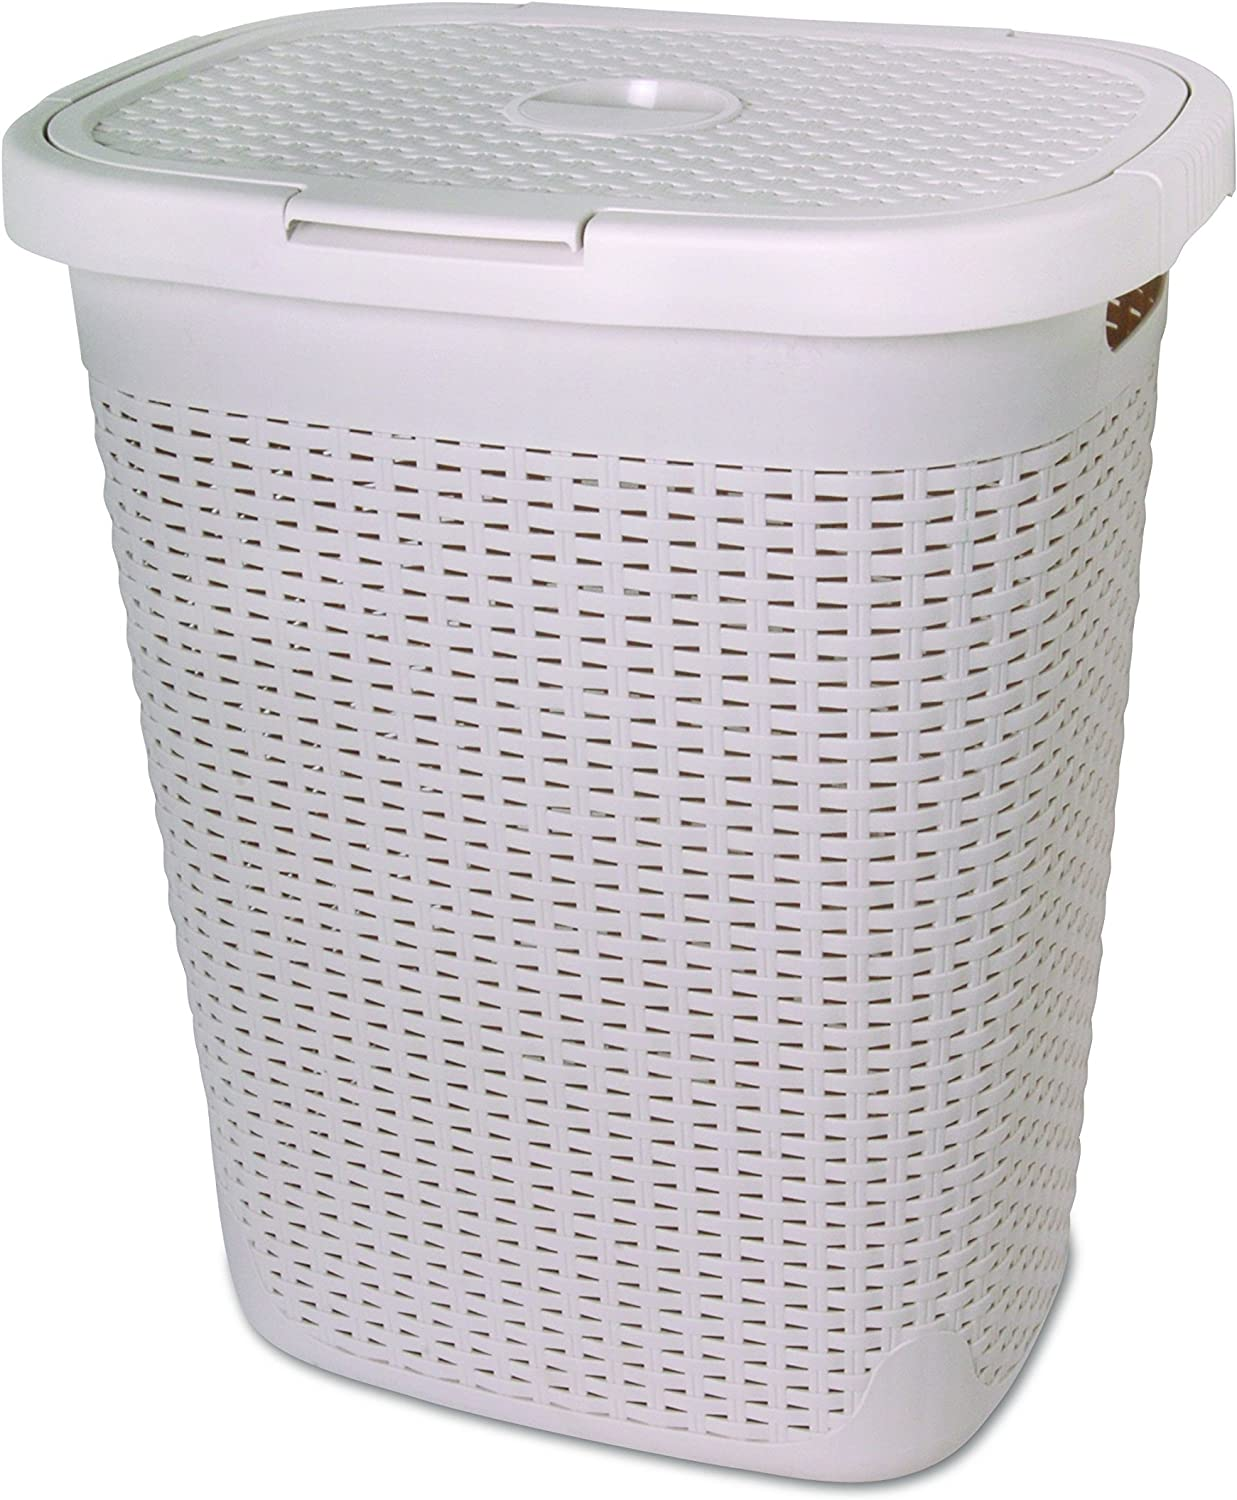 Wicker Laundry Hamper With Lid 50 Liter - Bone Ivory Laundry Basket 1.40 Bushel Durable Bin With Cutout Handles - Easy Storage Dirty Cloths in Washroom Bathroom, Or Bedroom. By Superio